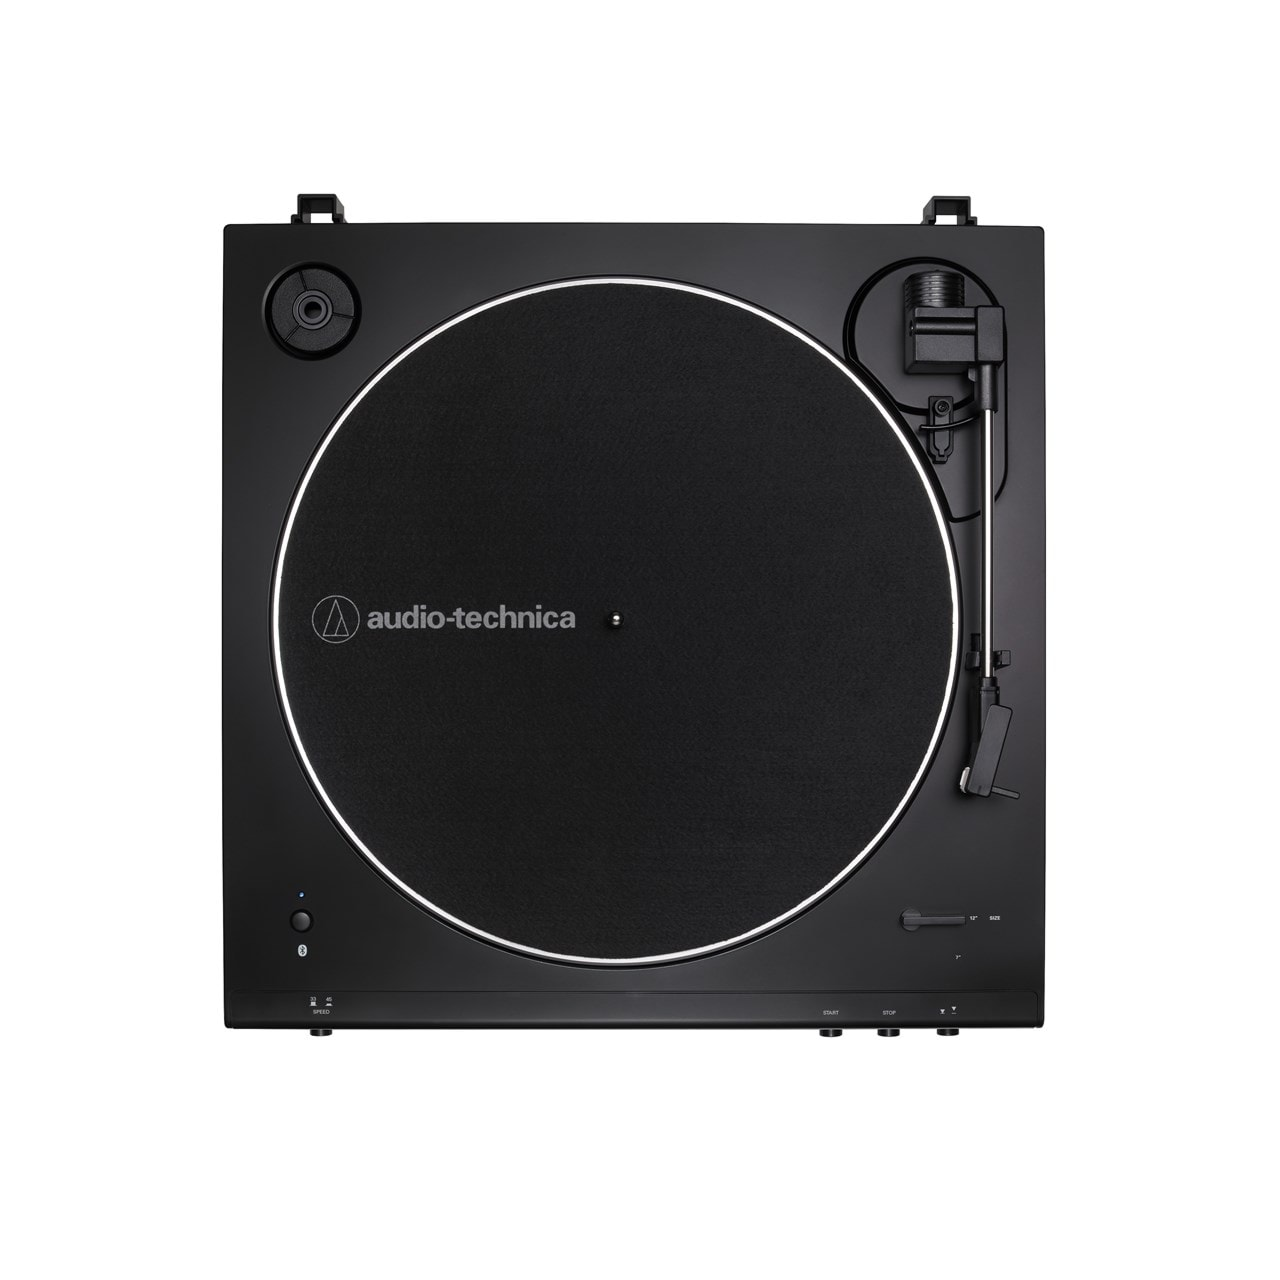 Audio Technica At-LP60XBT Black Bluetooth Turntable - 2